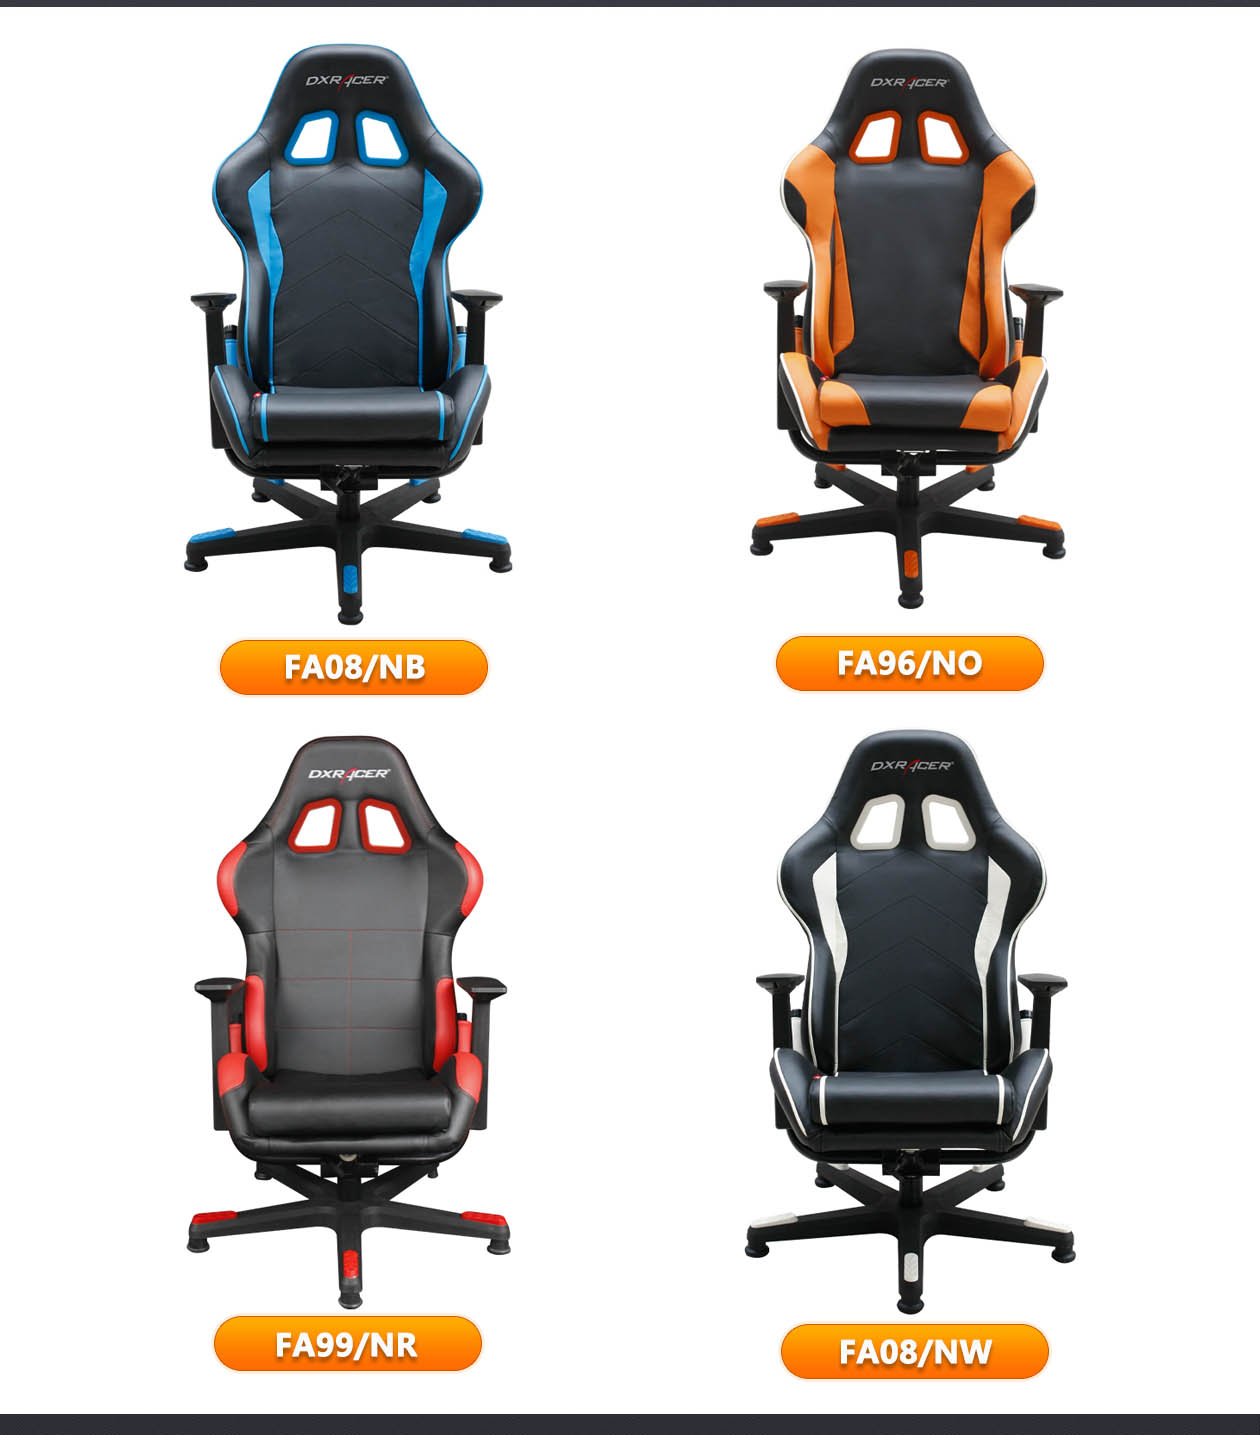 Dxr Racer Chair Dxracer Video Gaming Chair Fa08nw Racing Seats Playroom